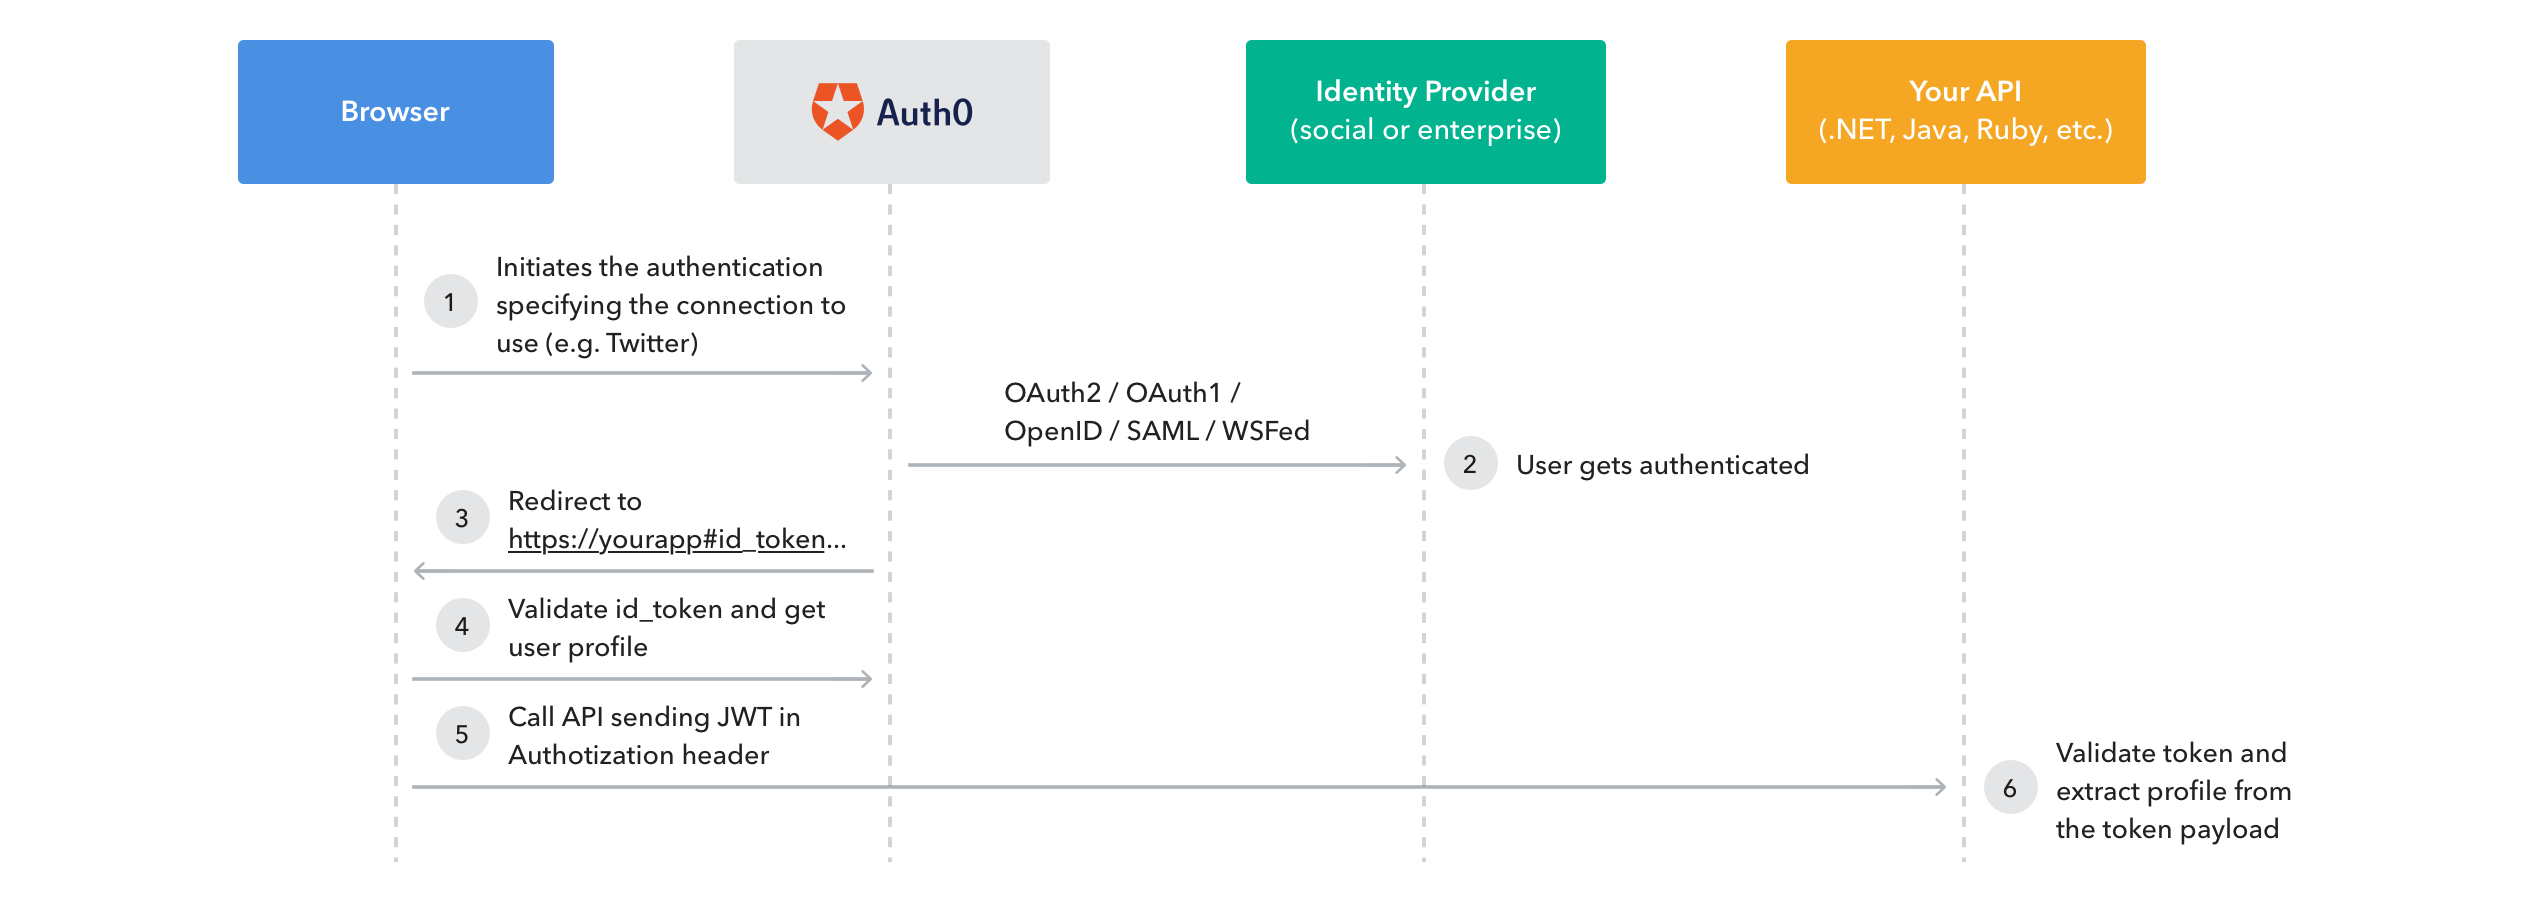 Auth0 and Identity Industry Standards